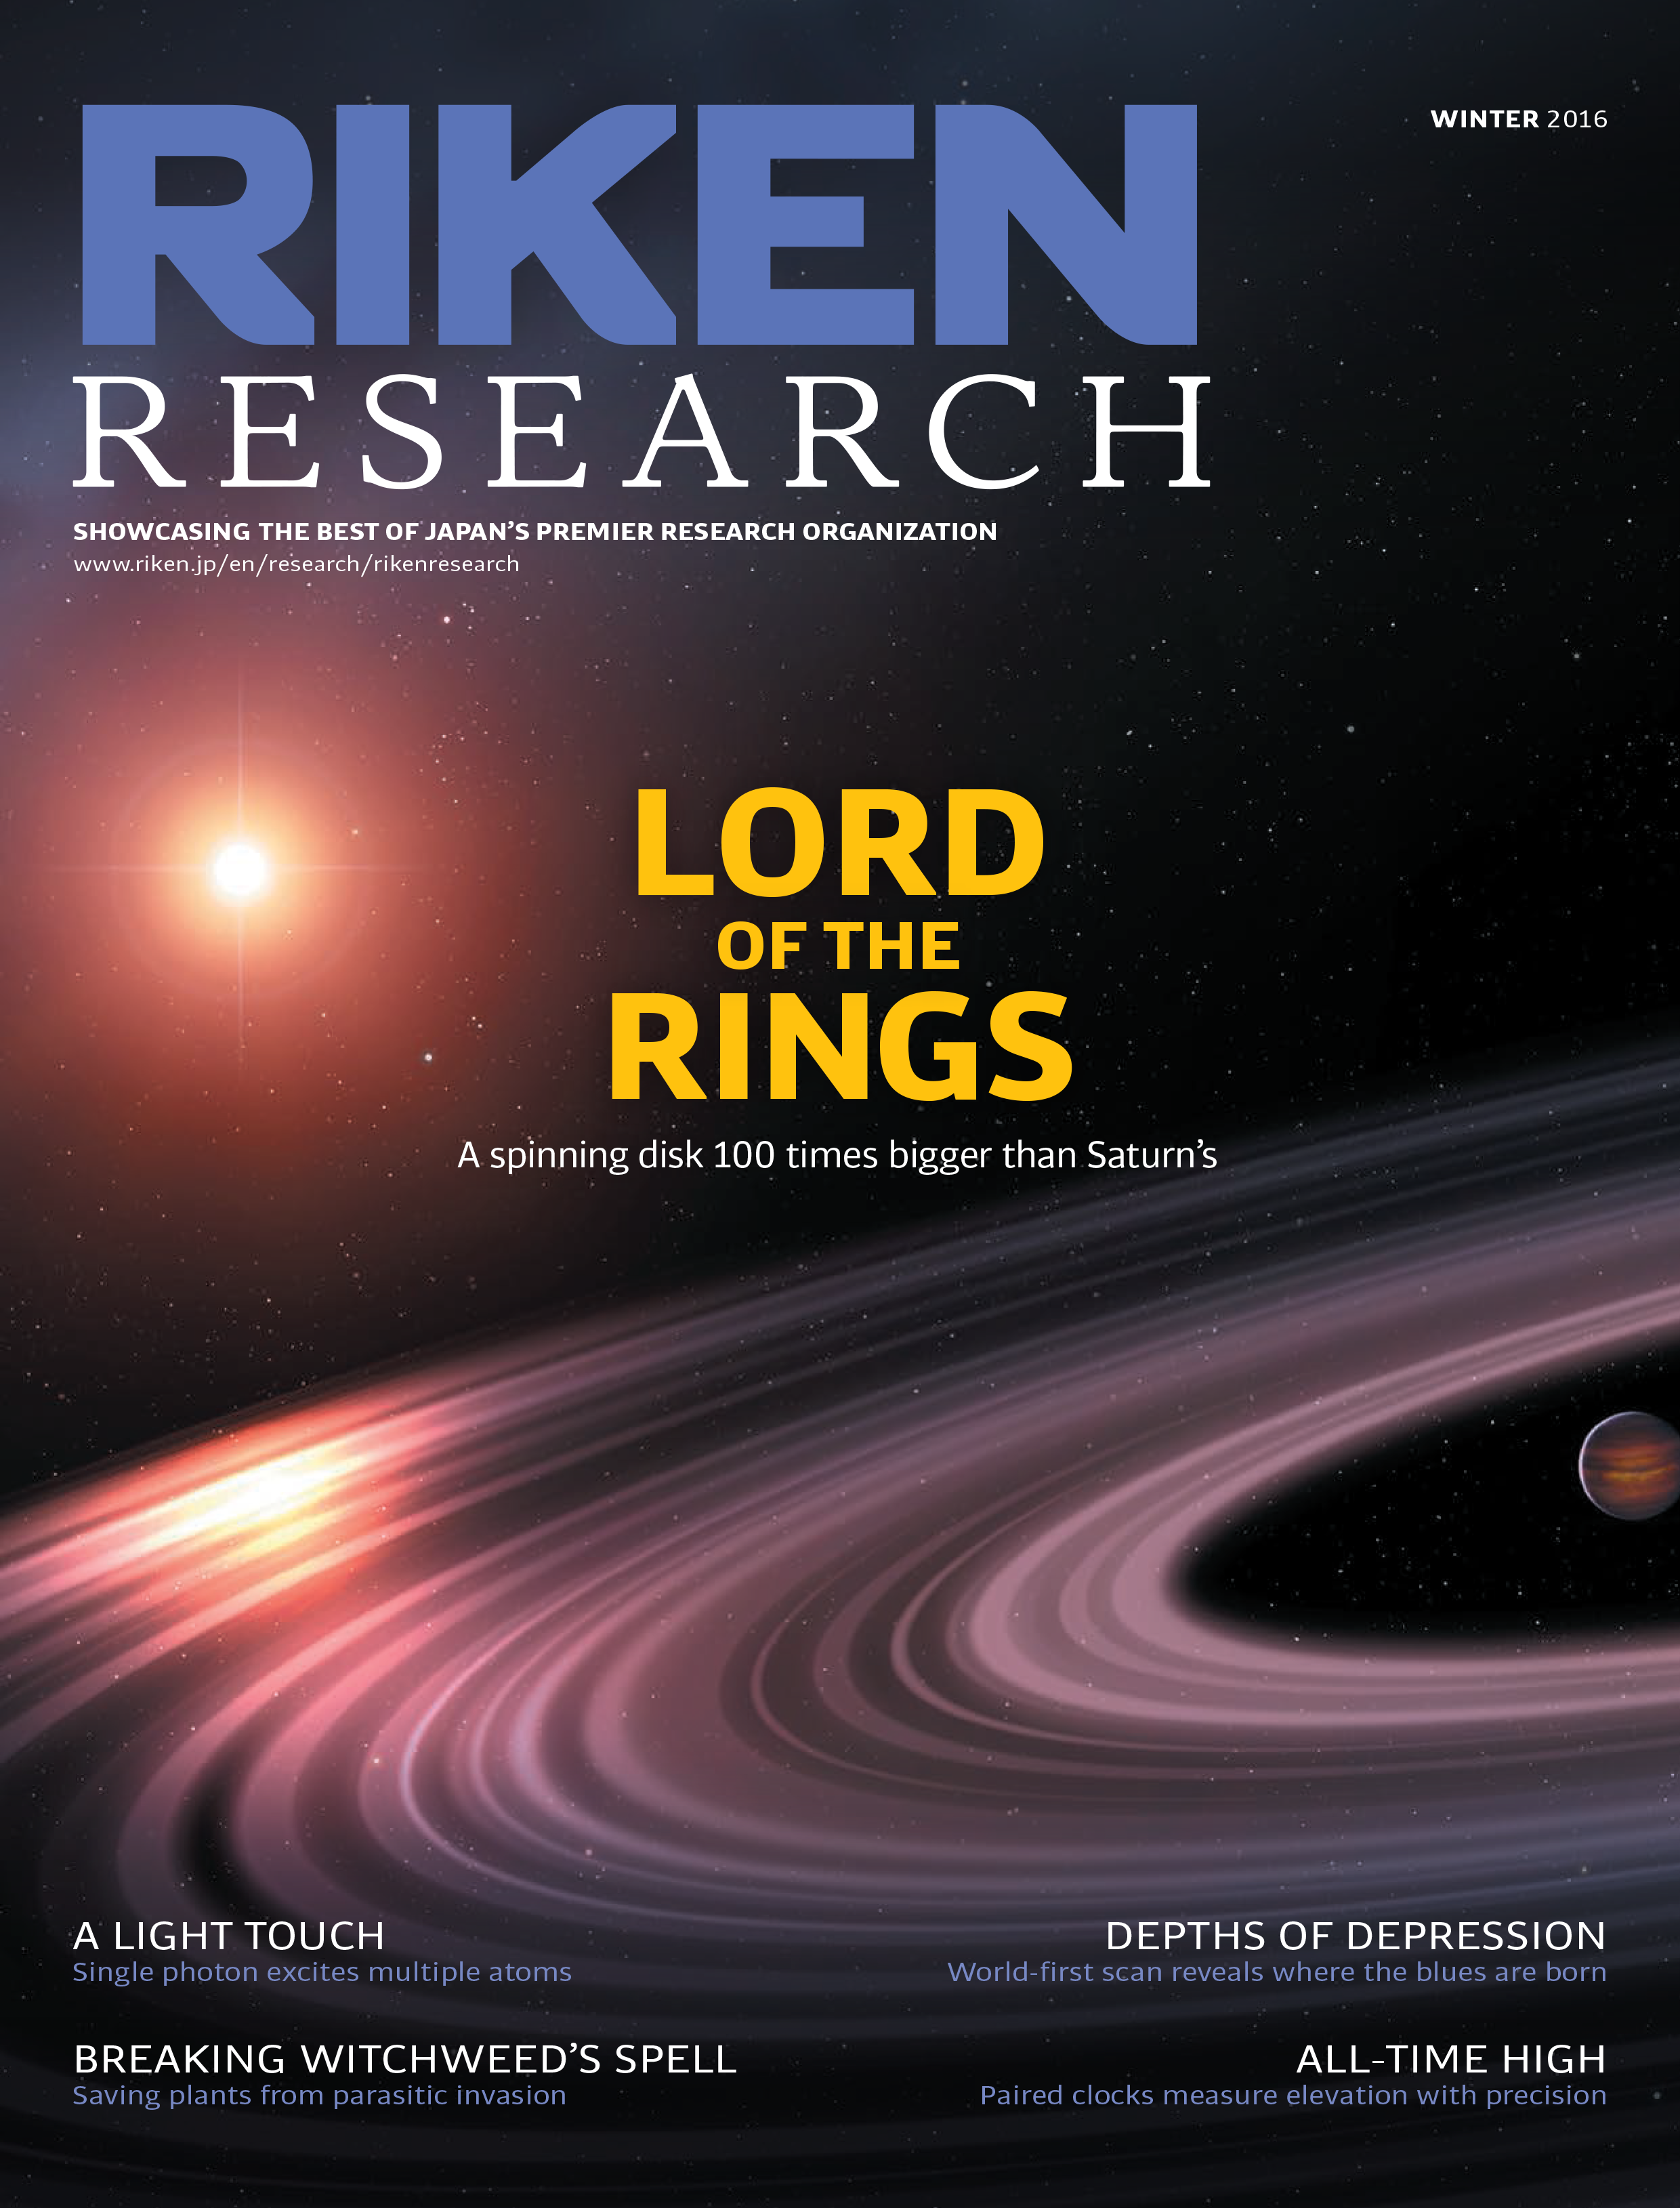 RIKEN Research Winter Issue